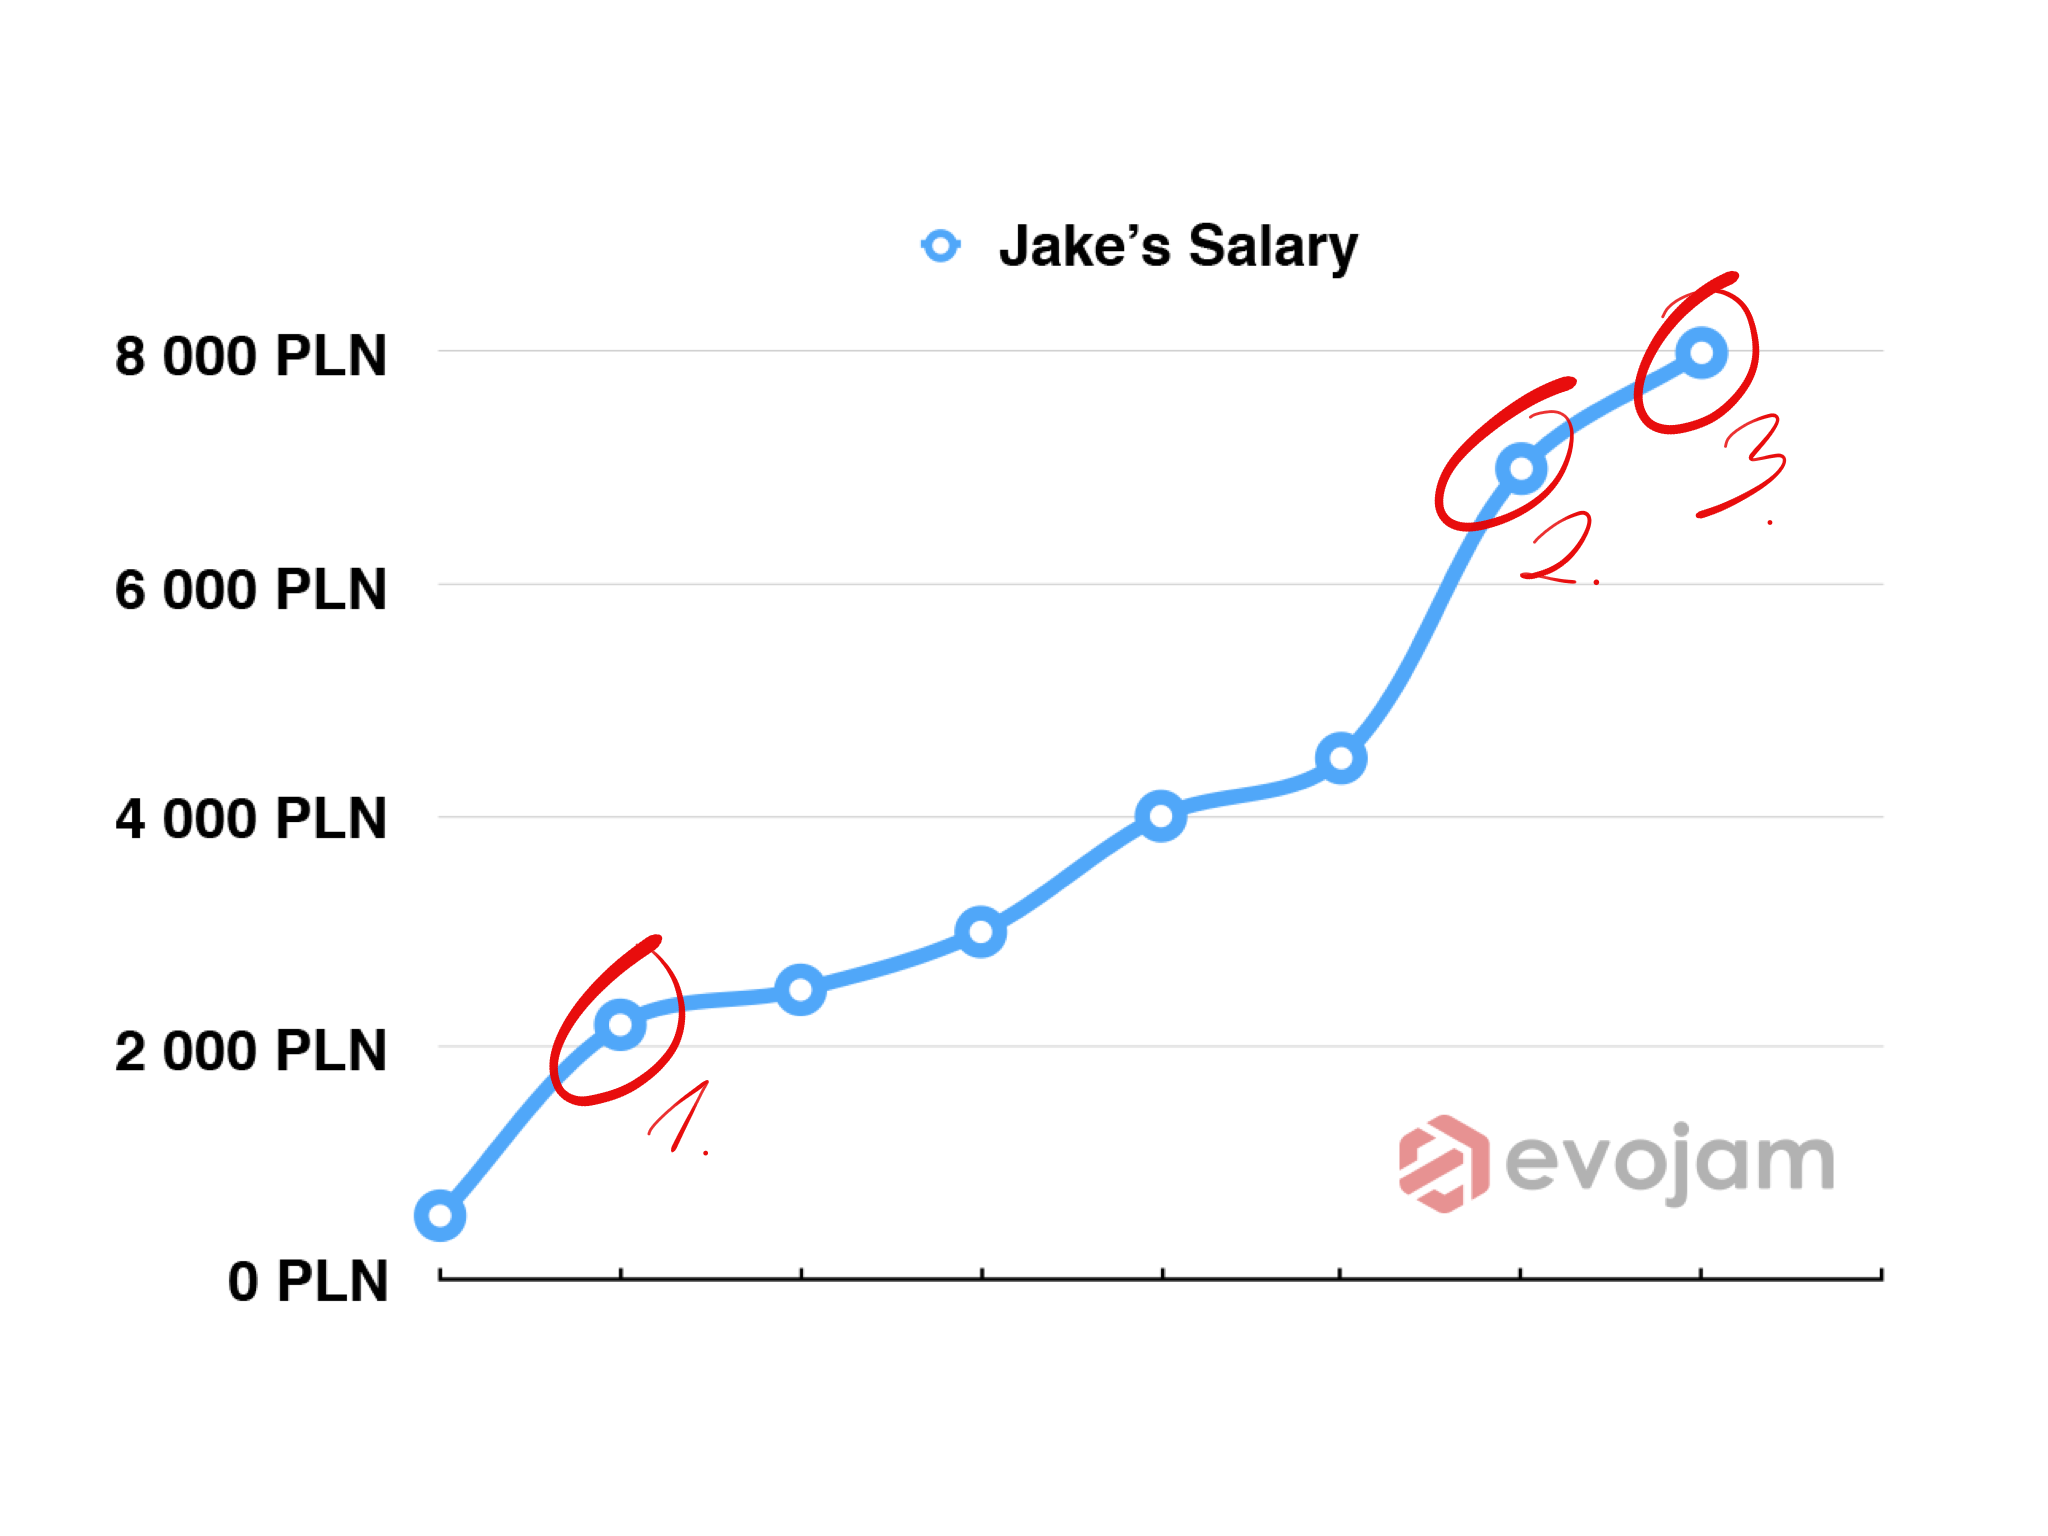 Jake's salary over 2 years since he joined Evojam in July 2014.